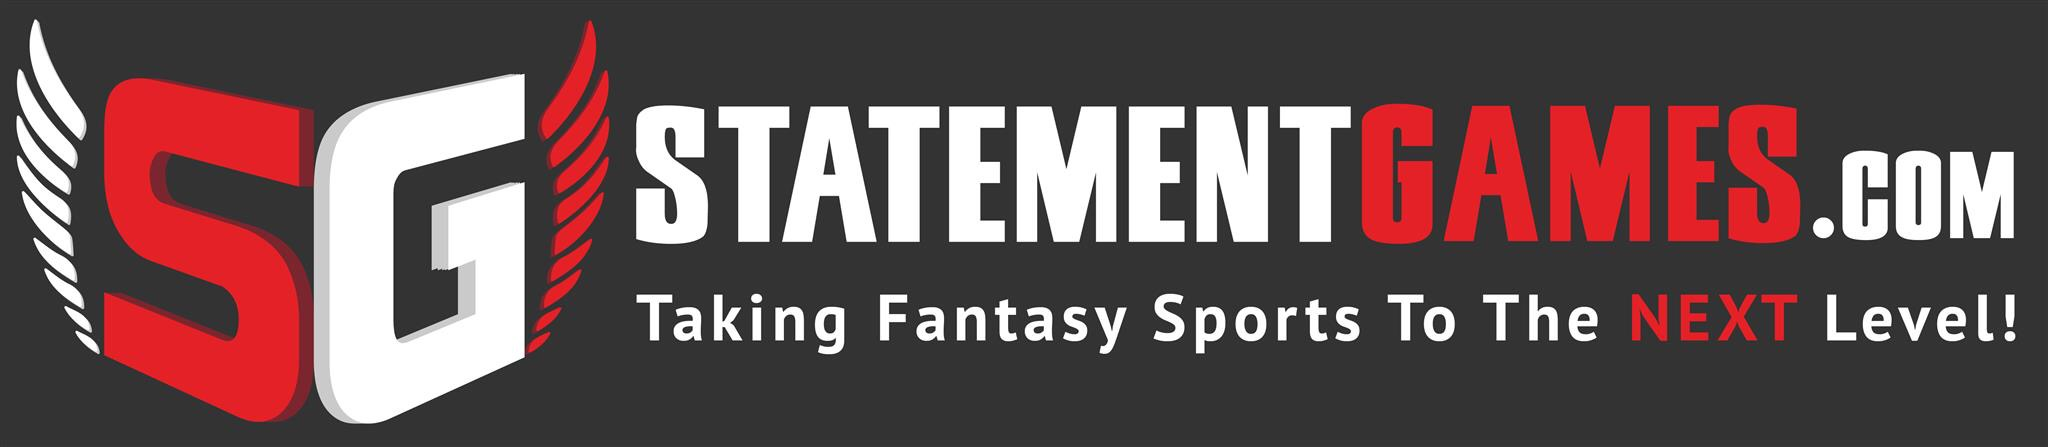 StatementGames Fantasy Sports – Fall 2018 Expectations